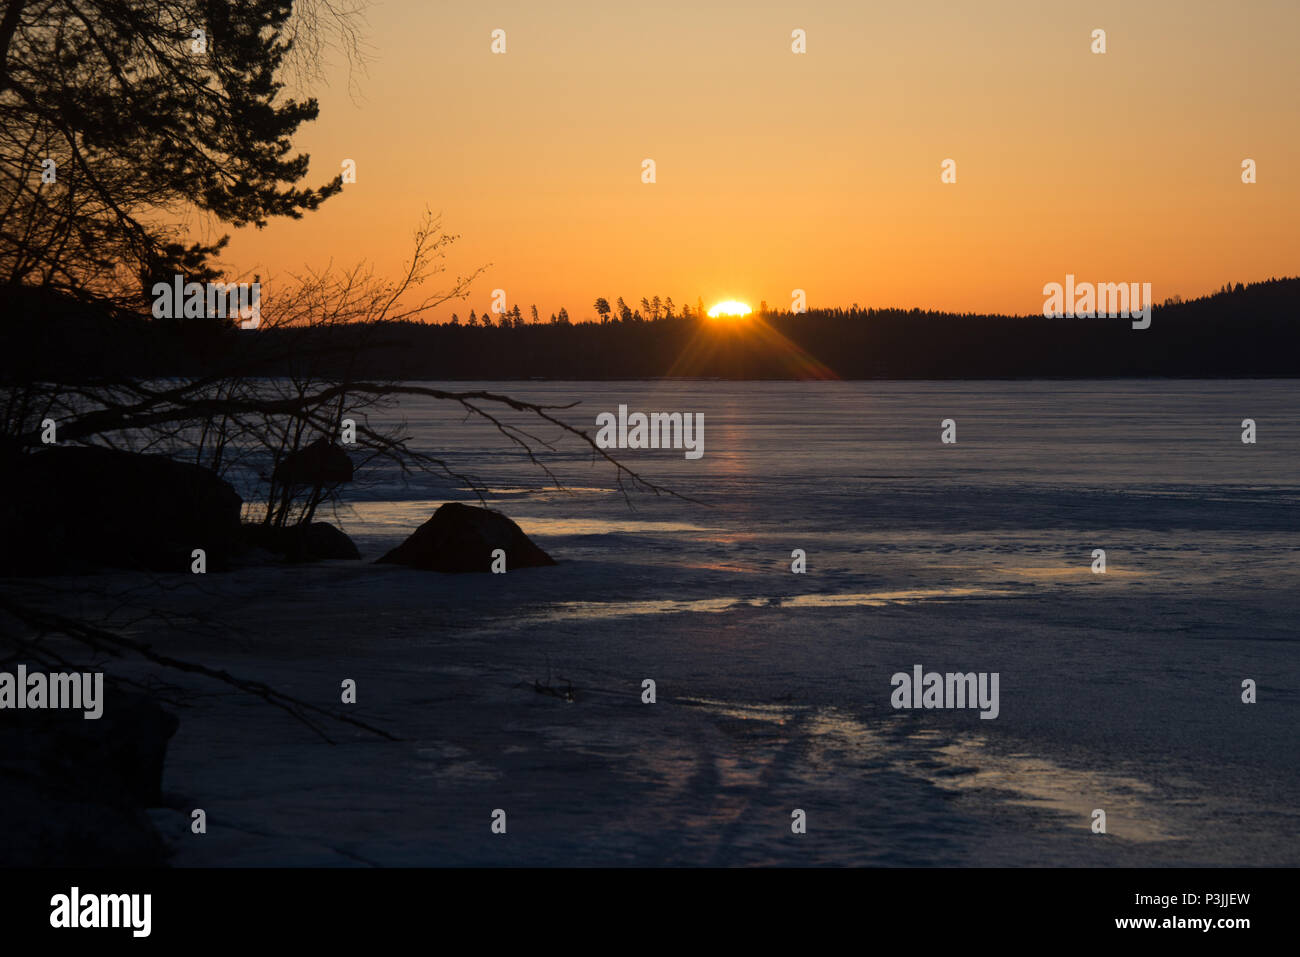 Lake Kukkia Sunrise. Luopioinen, FInland. 11.4.2018. I forgot my Nikon D610 while taking photos of the sunset last evening. So I got up early to witne - Stock Image